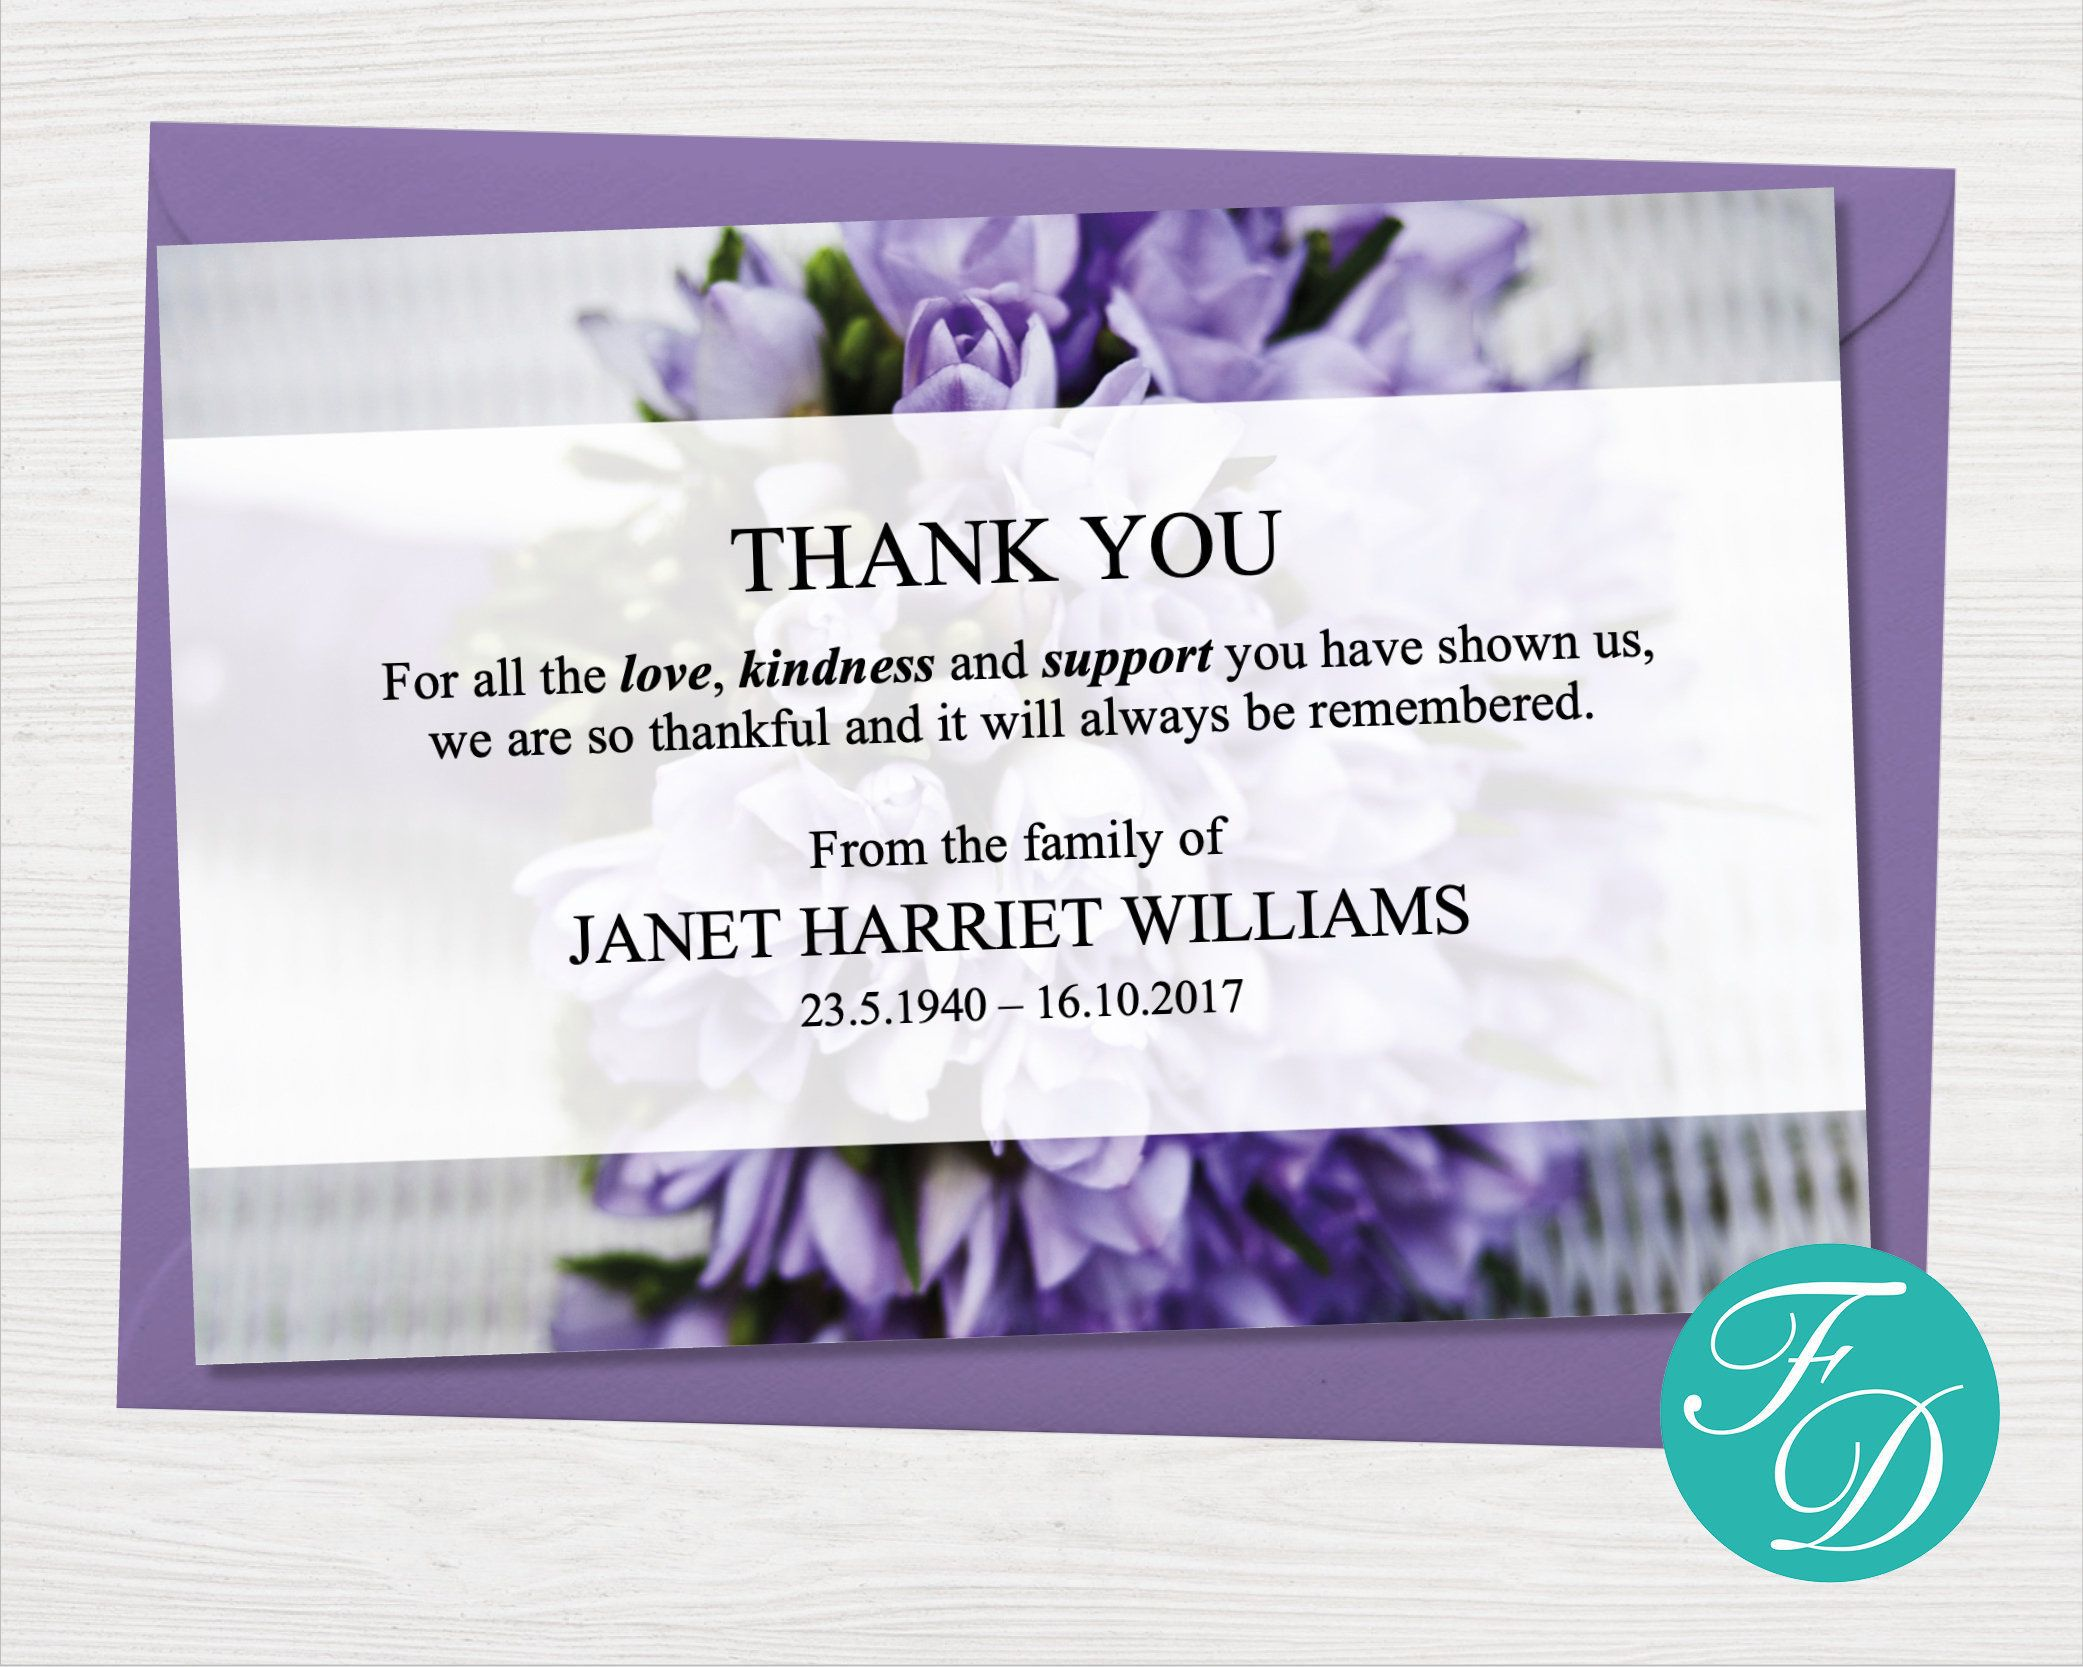 005 Fantastic Thank You Note Template Microsoft Word Example  Card Free Funeral LetterFull